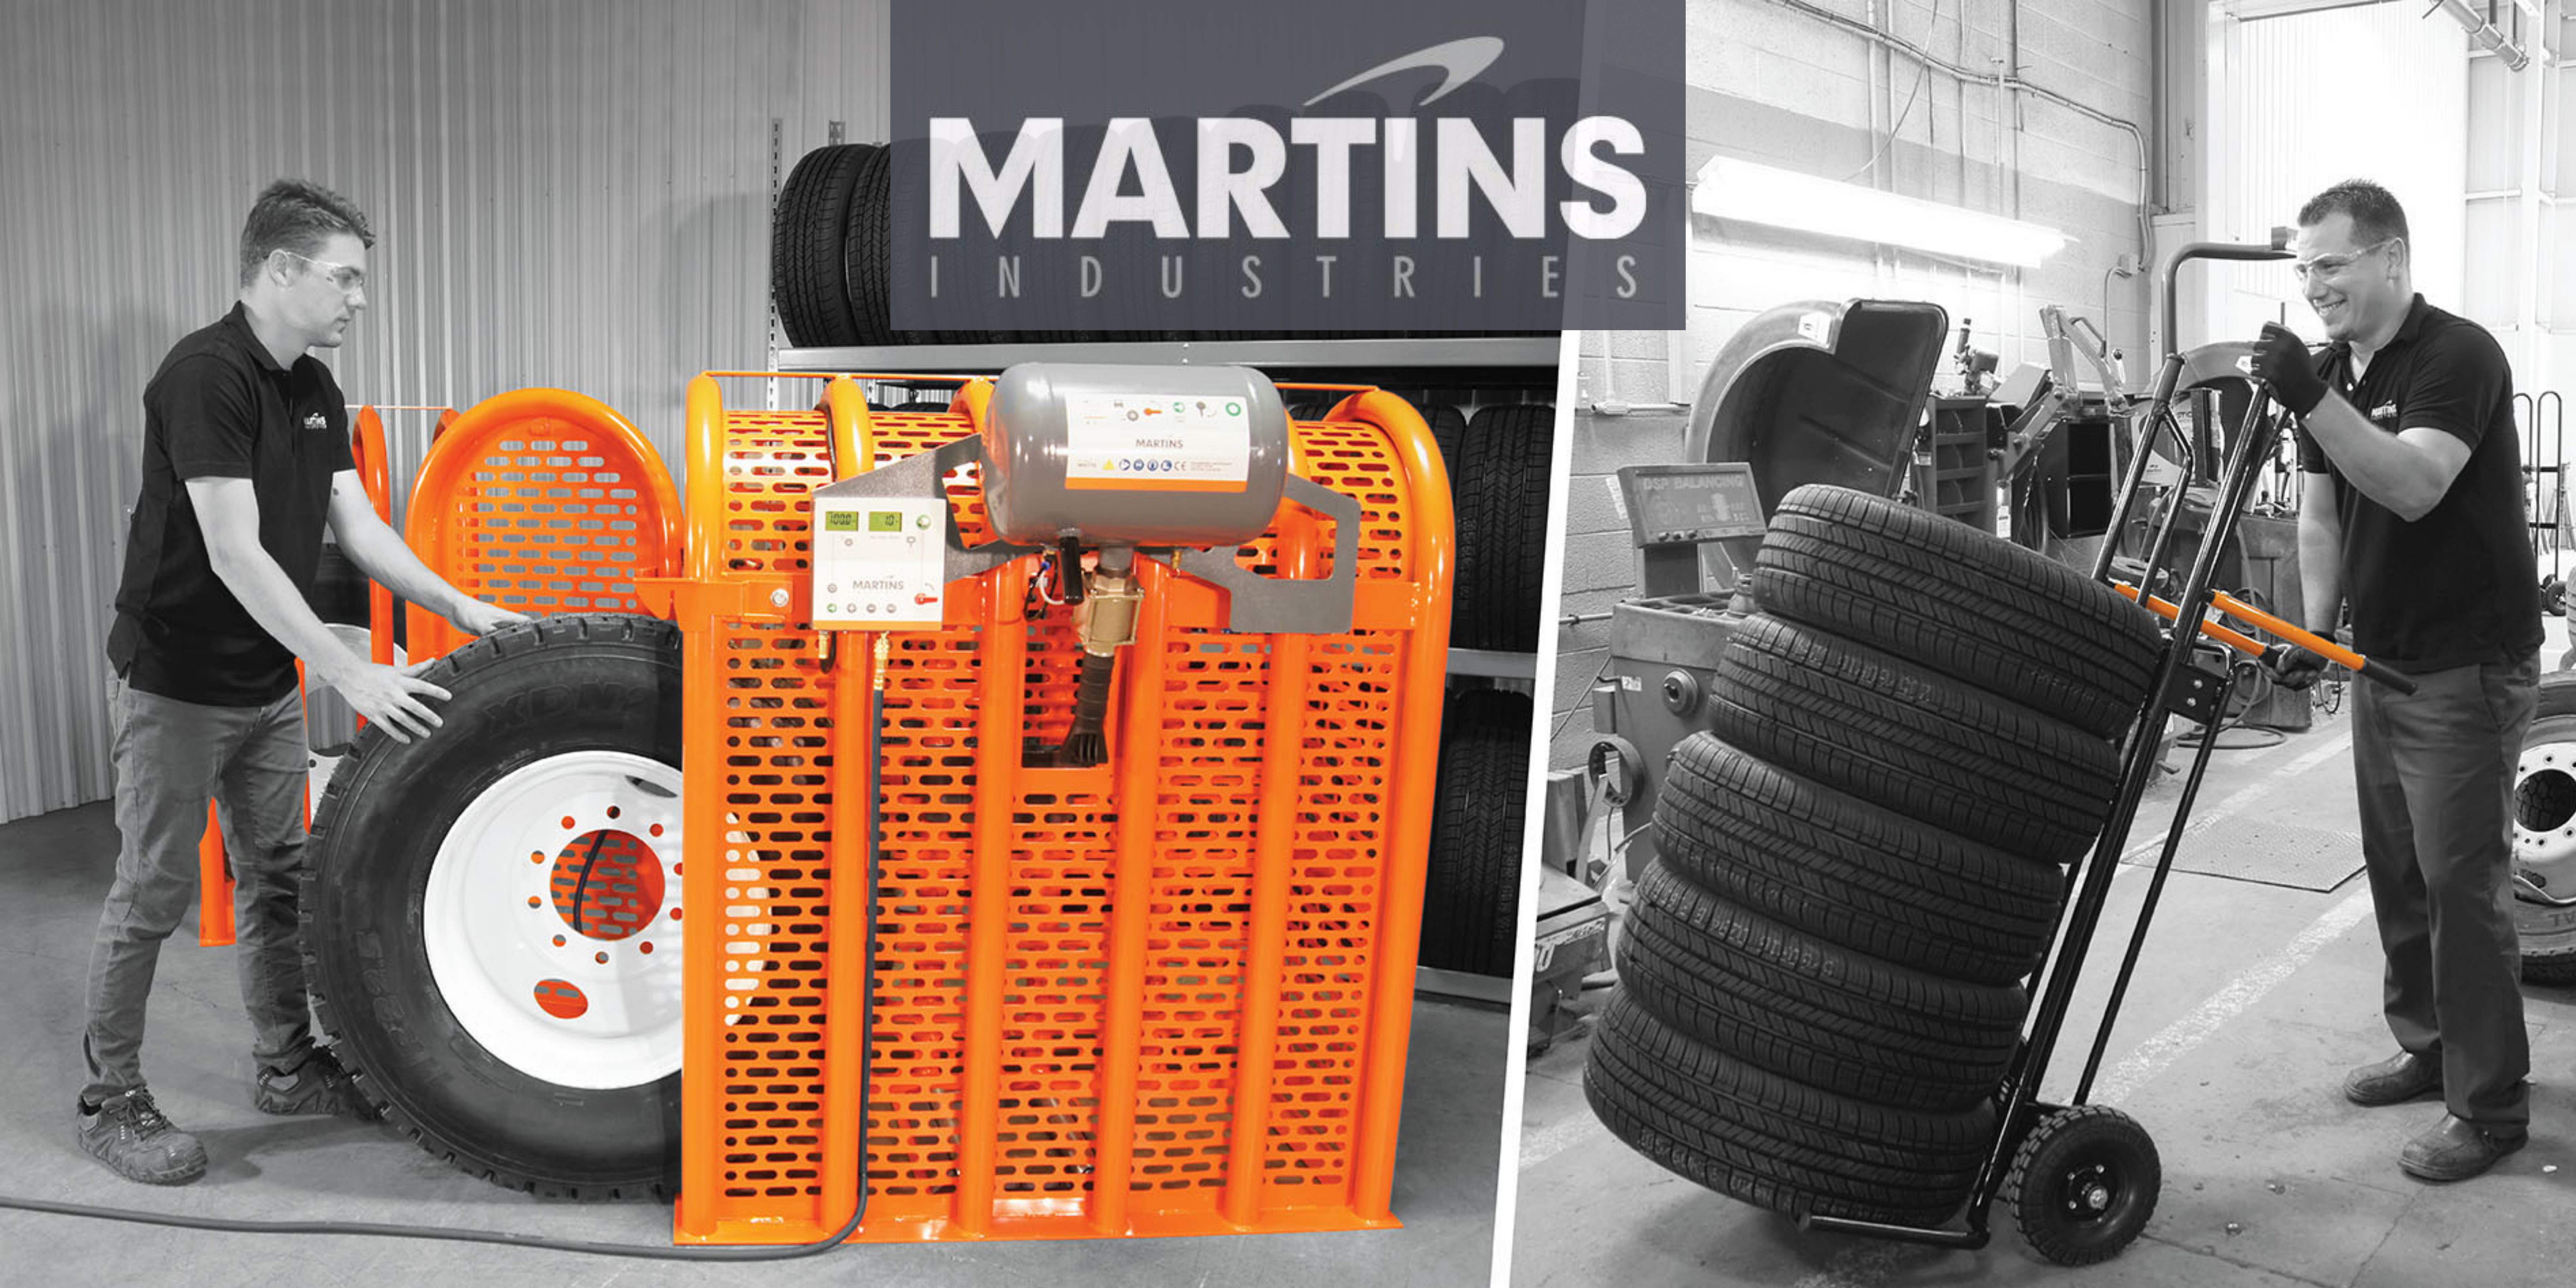 martins-industries-banner.png